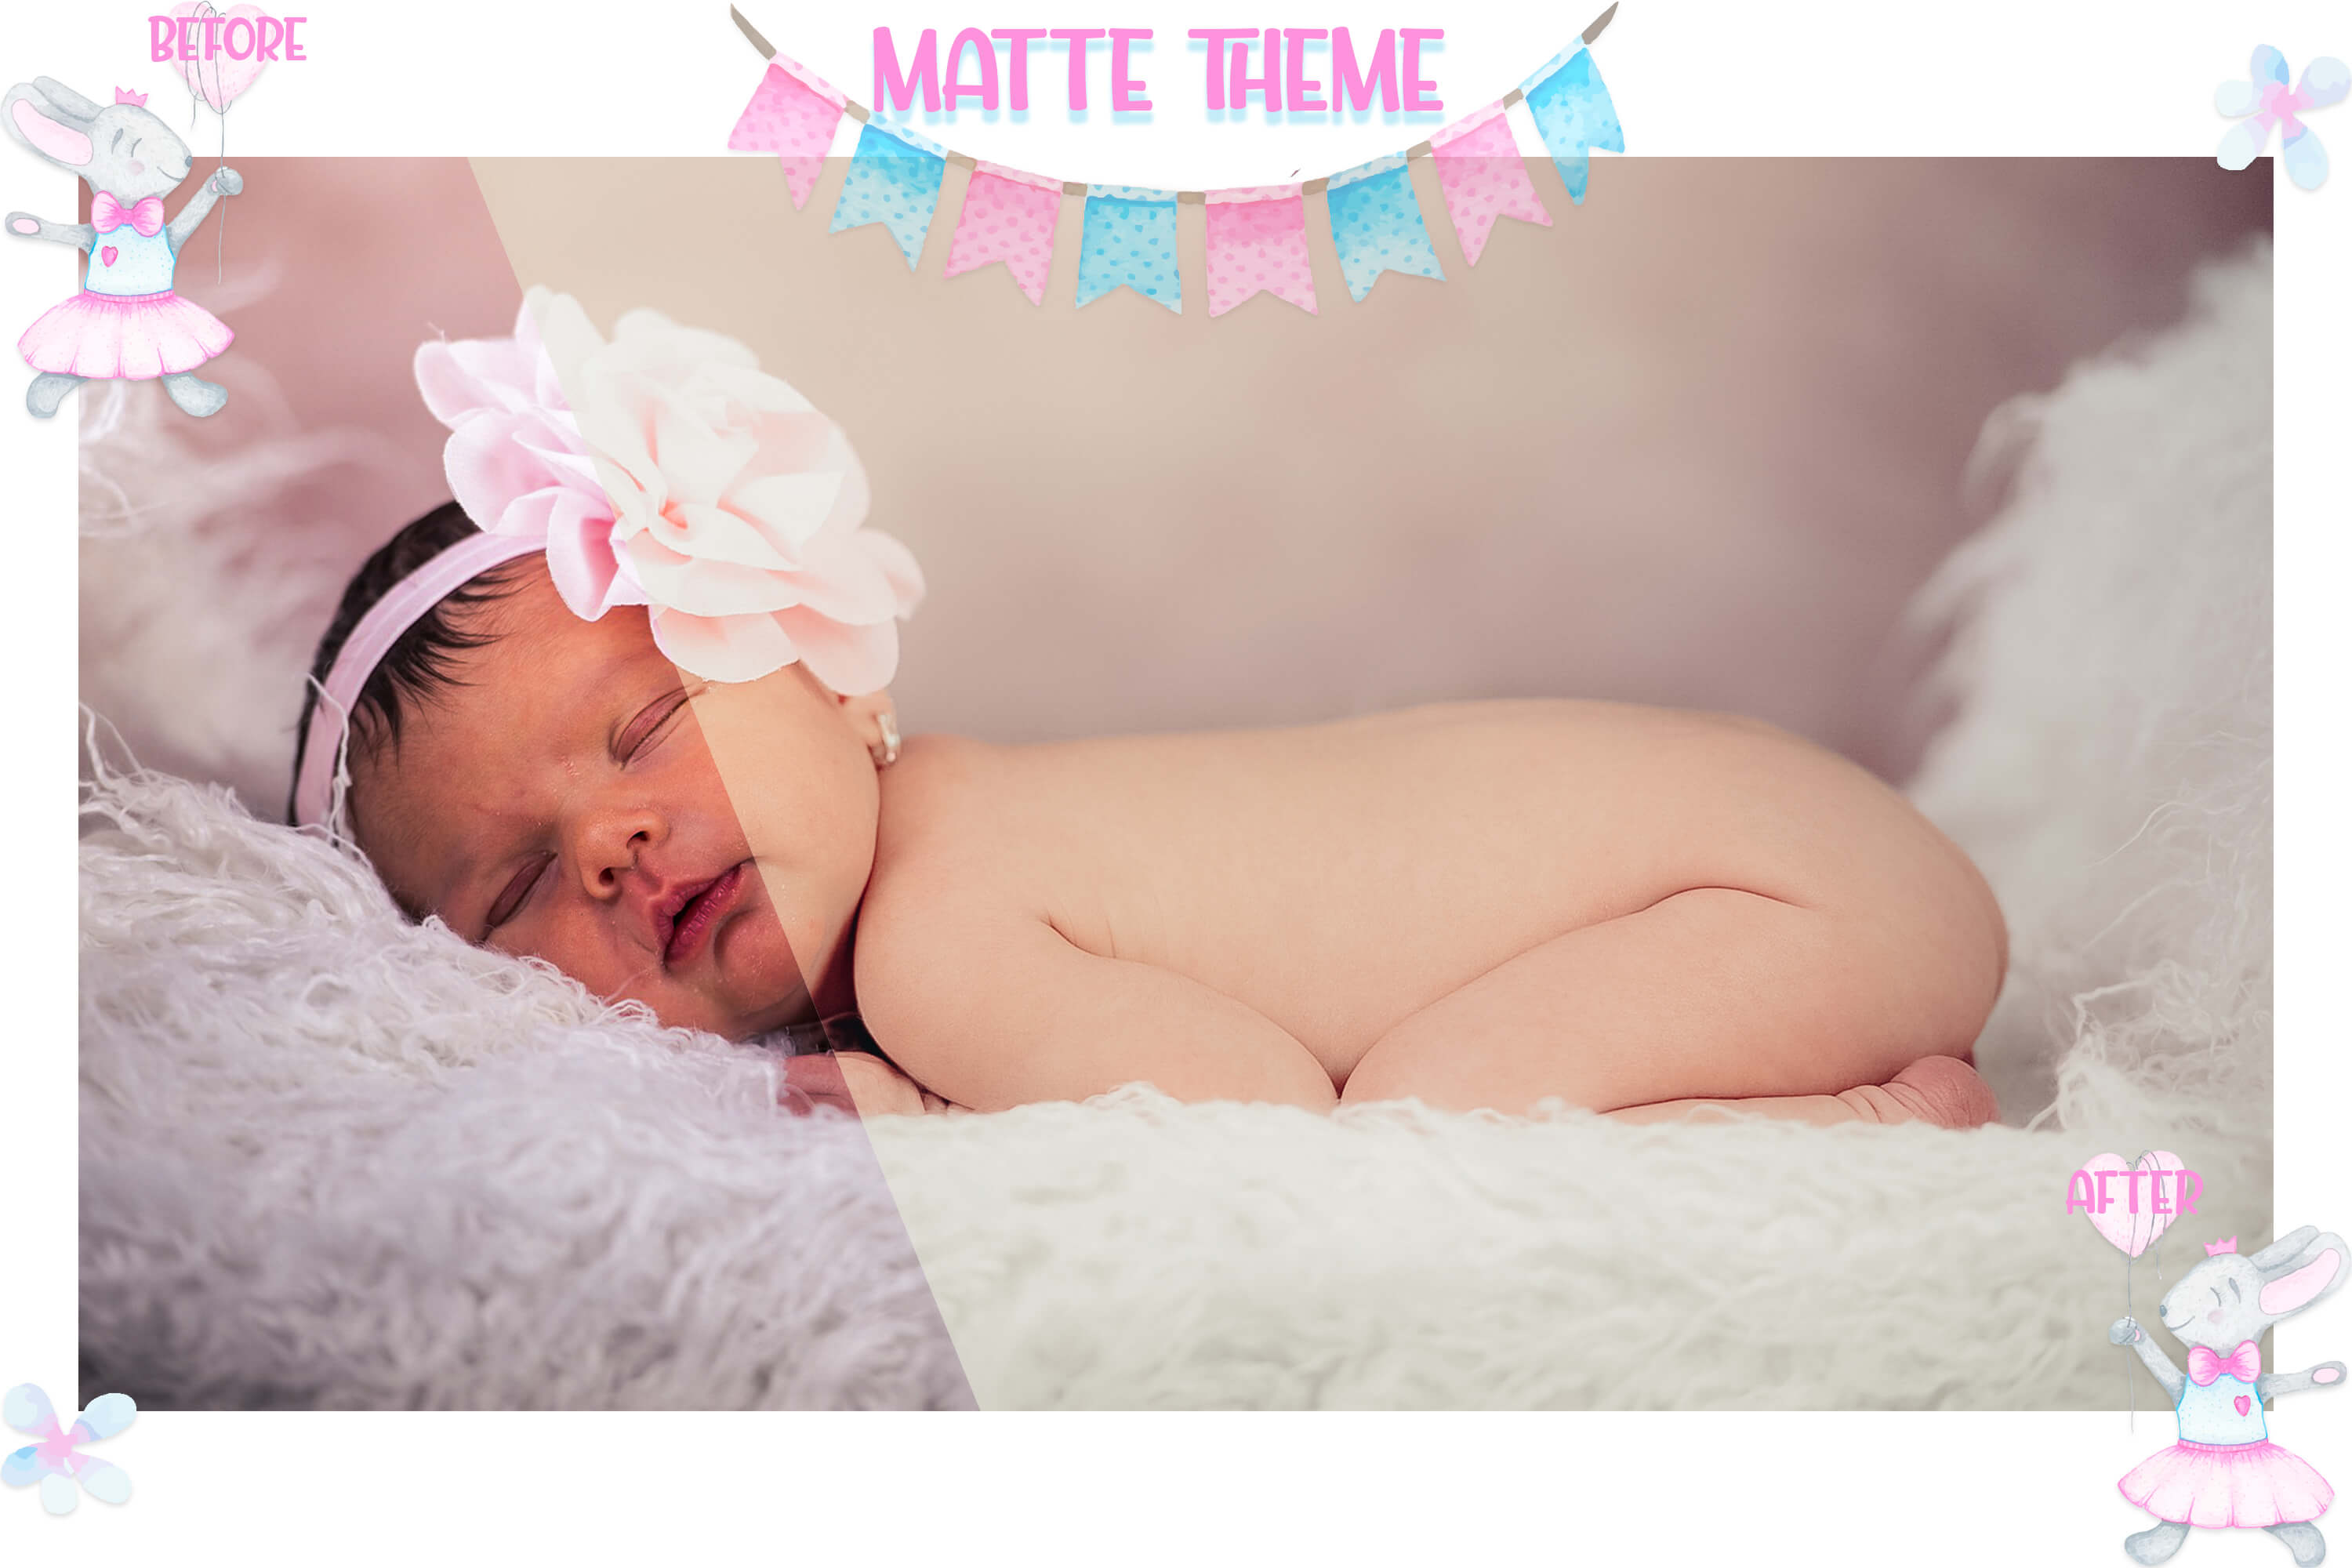 10 Newborn Mobile & Desktop Lightroom Presets, baby skin LR example image 4